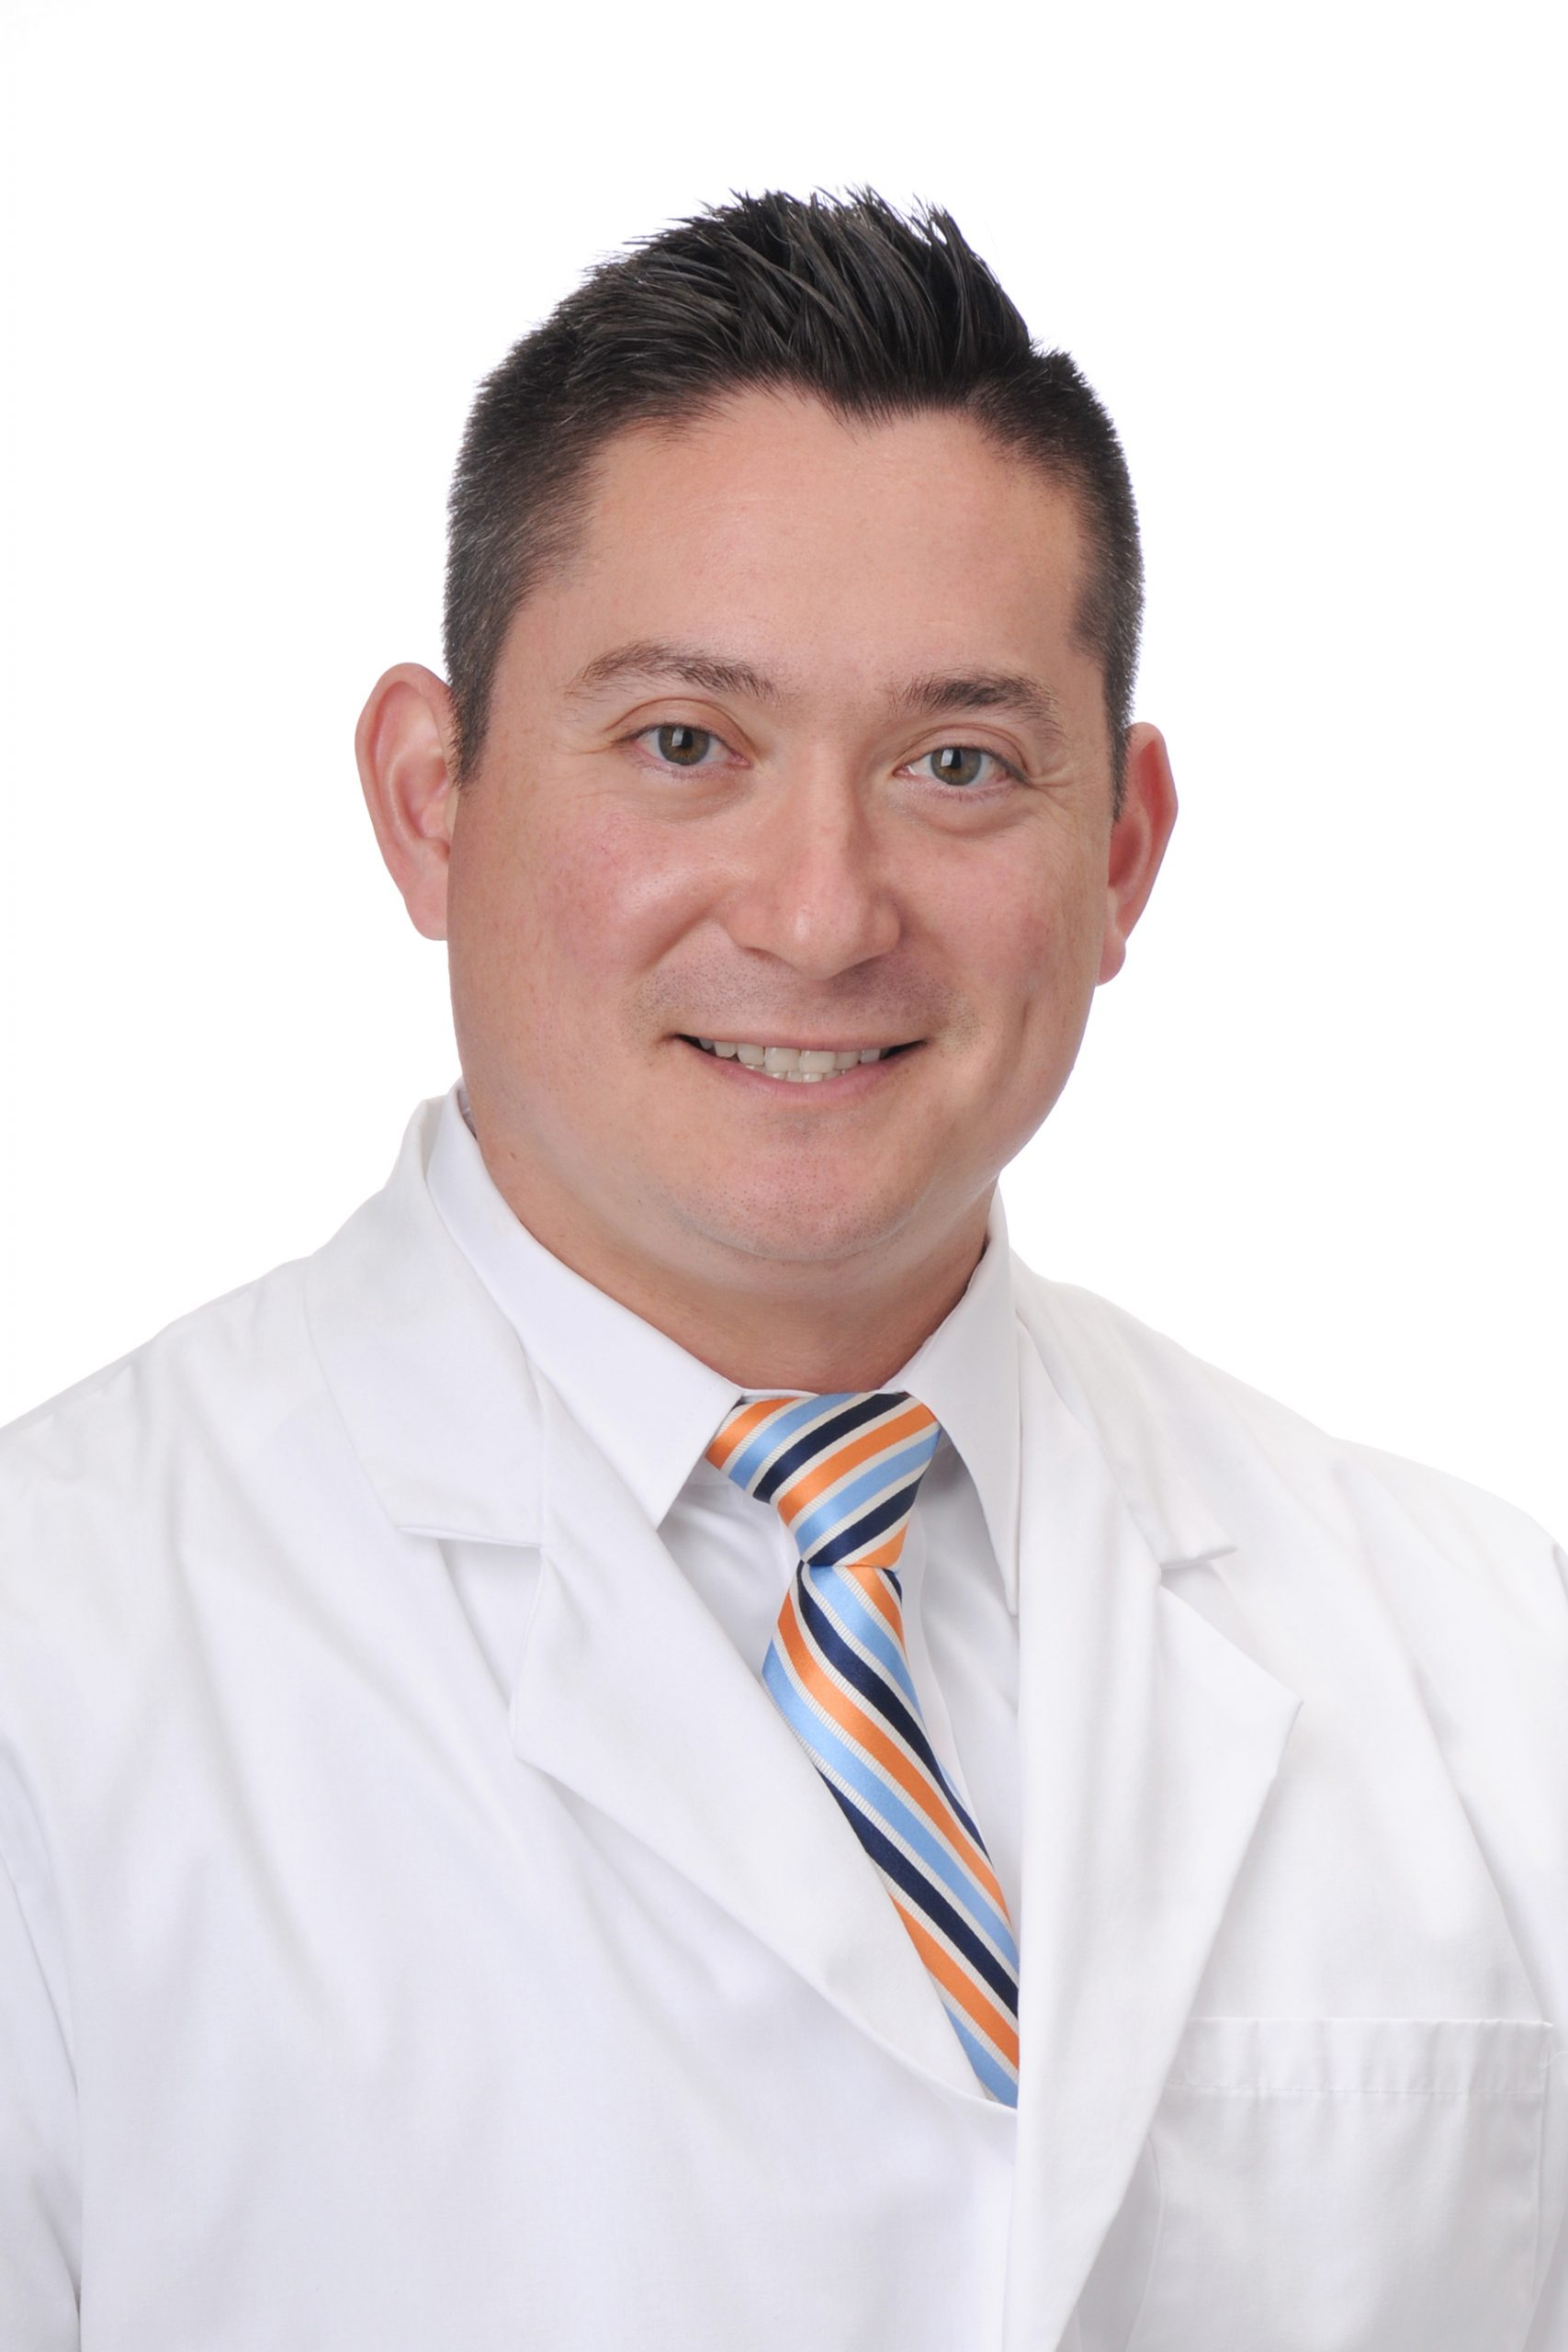 Andy Bibey Orthopaedic Surgery